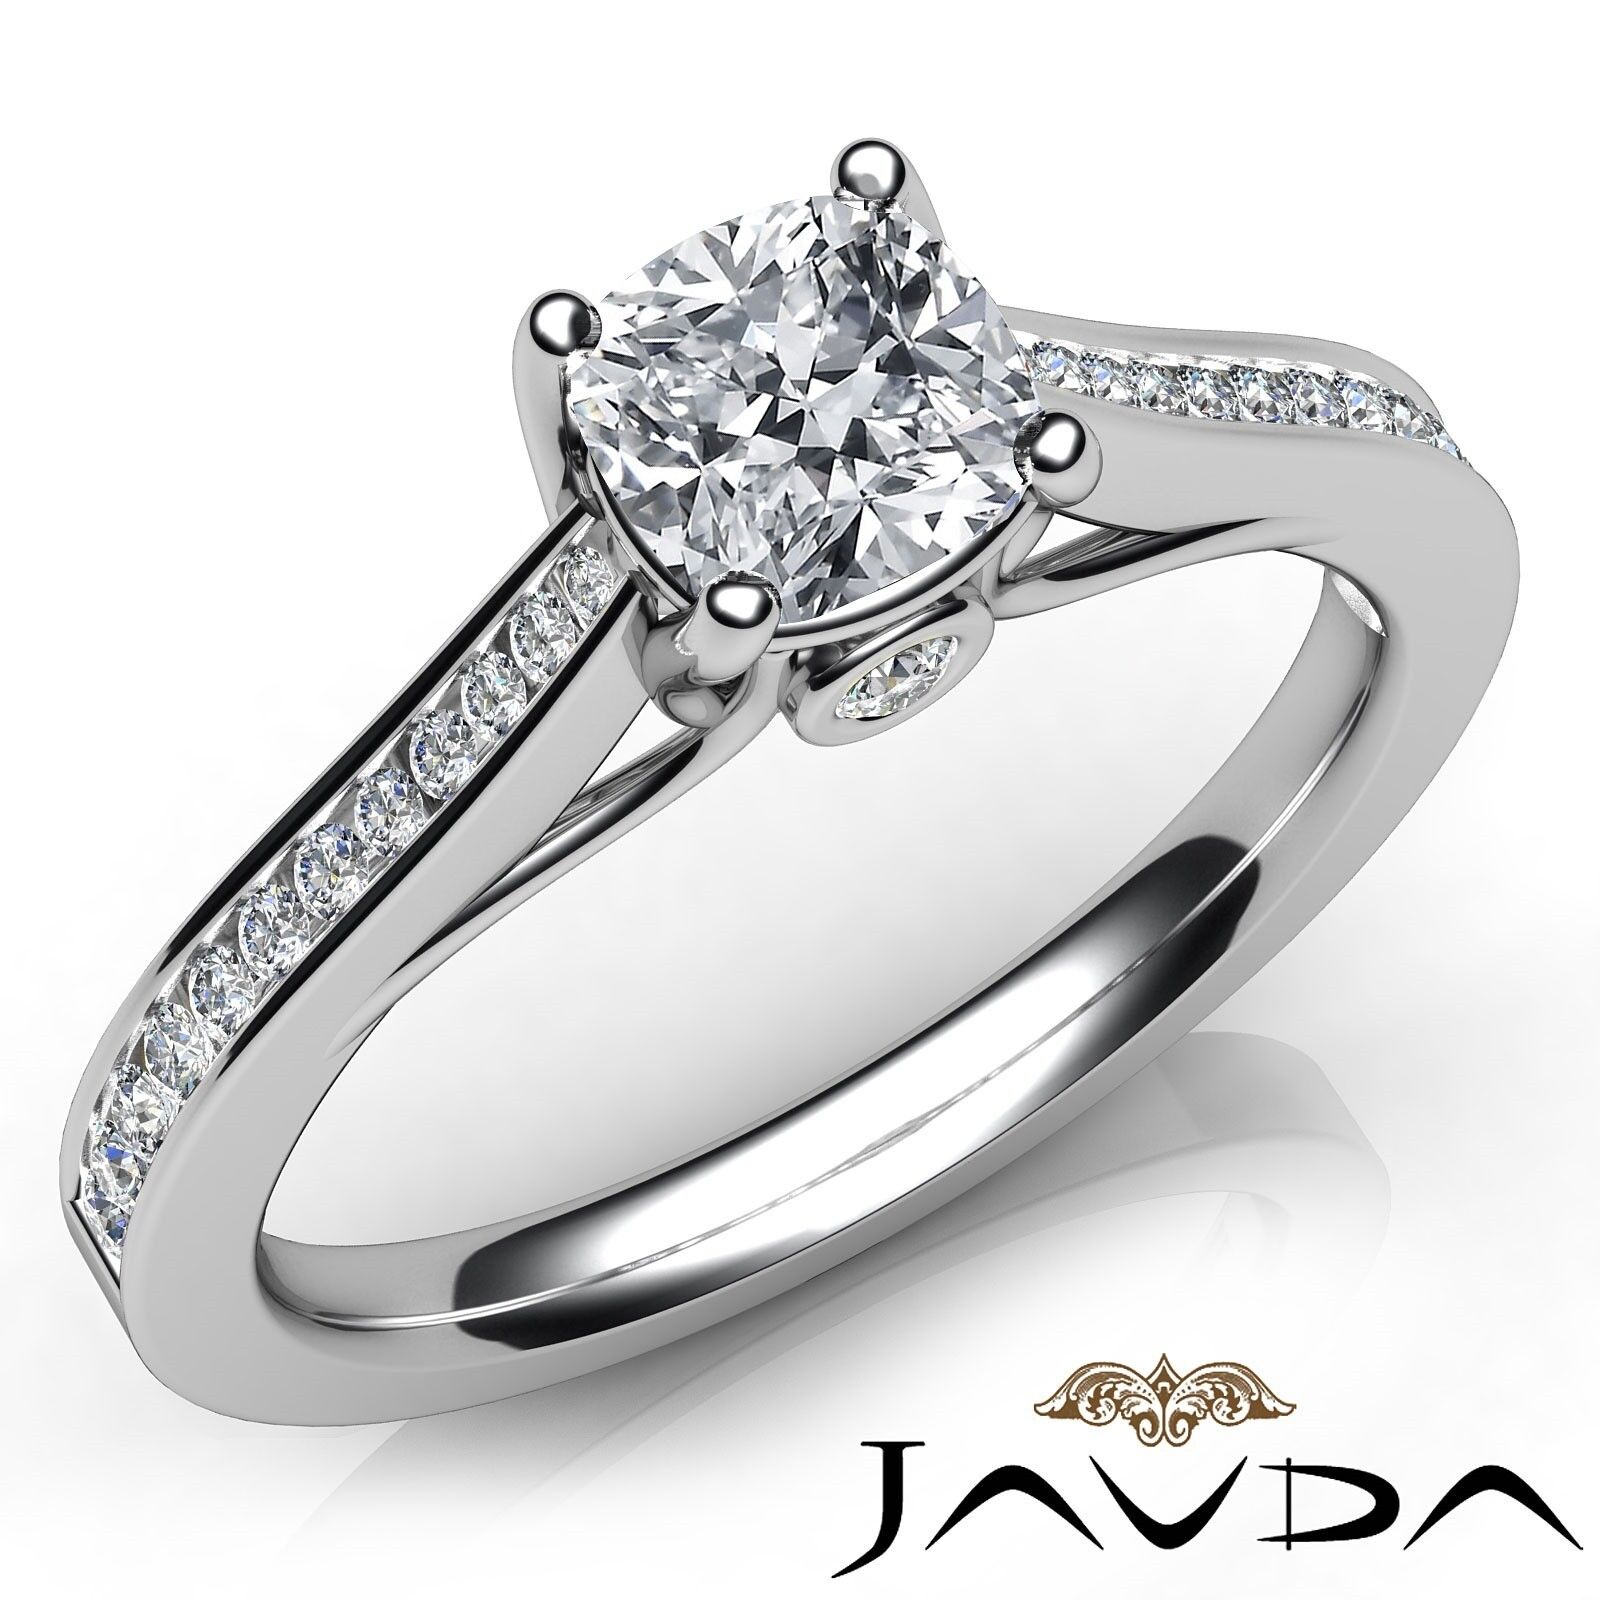 1.1ctw Channel Bezel Prong Cushion Diamond Engagement Ring GIA G-VVS2 White Gold